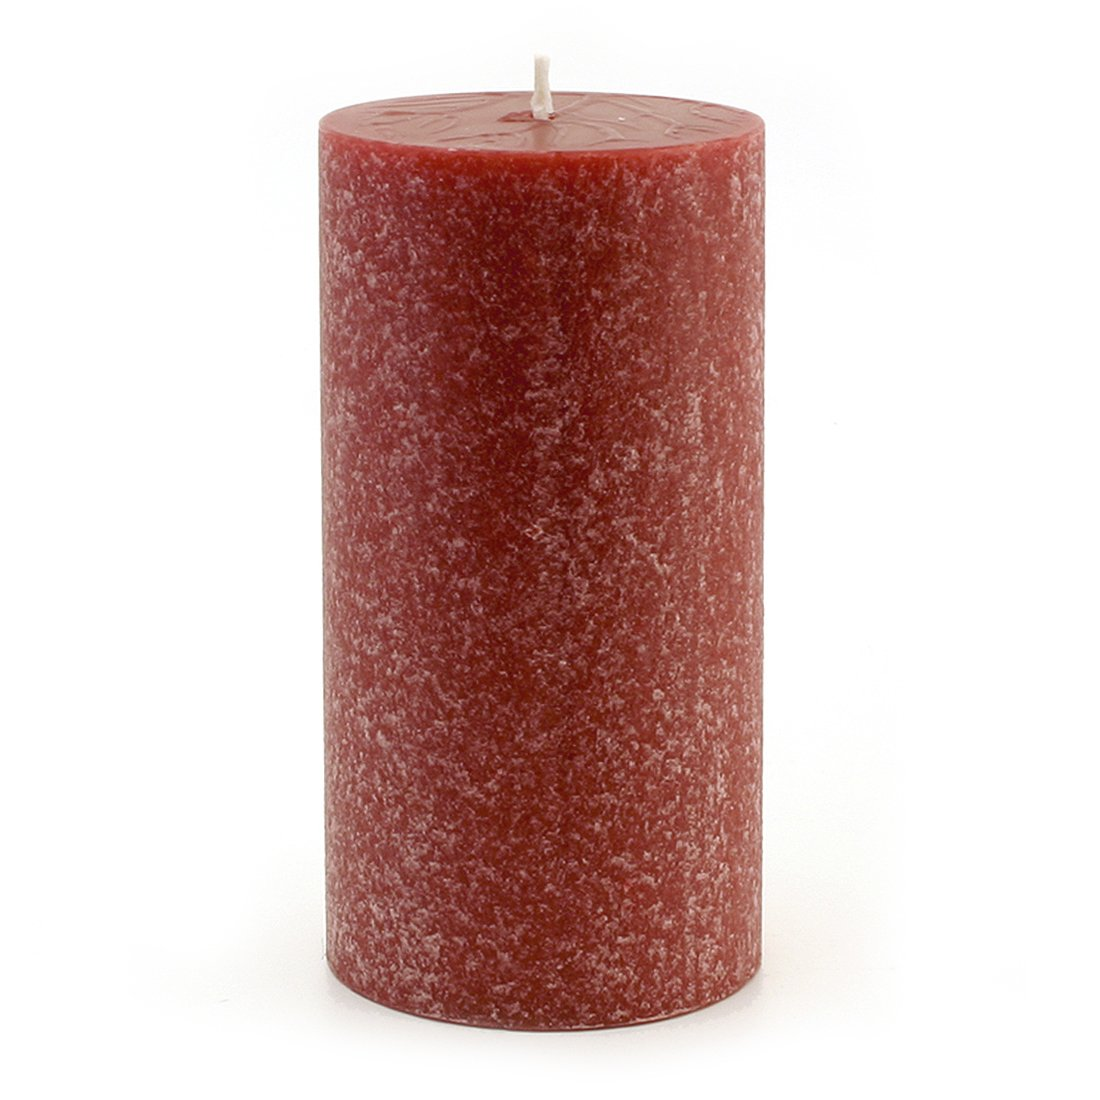 Root Scented Timberline Pillar Candle, 3-Inch by 6-Inch Tall, Crisp Autumn